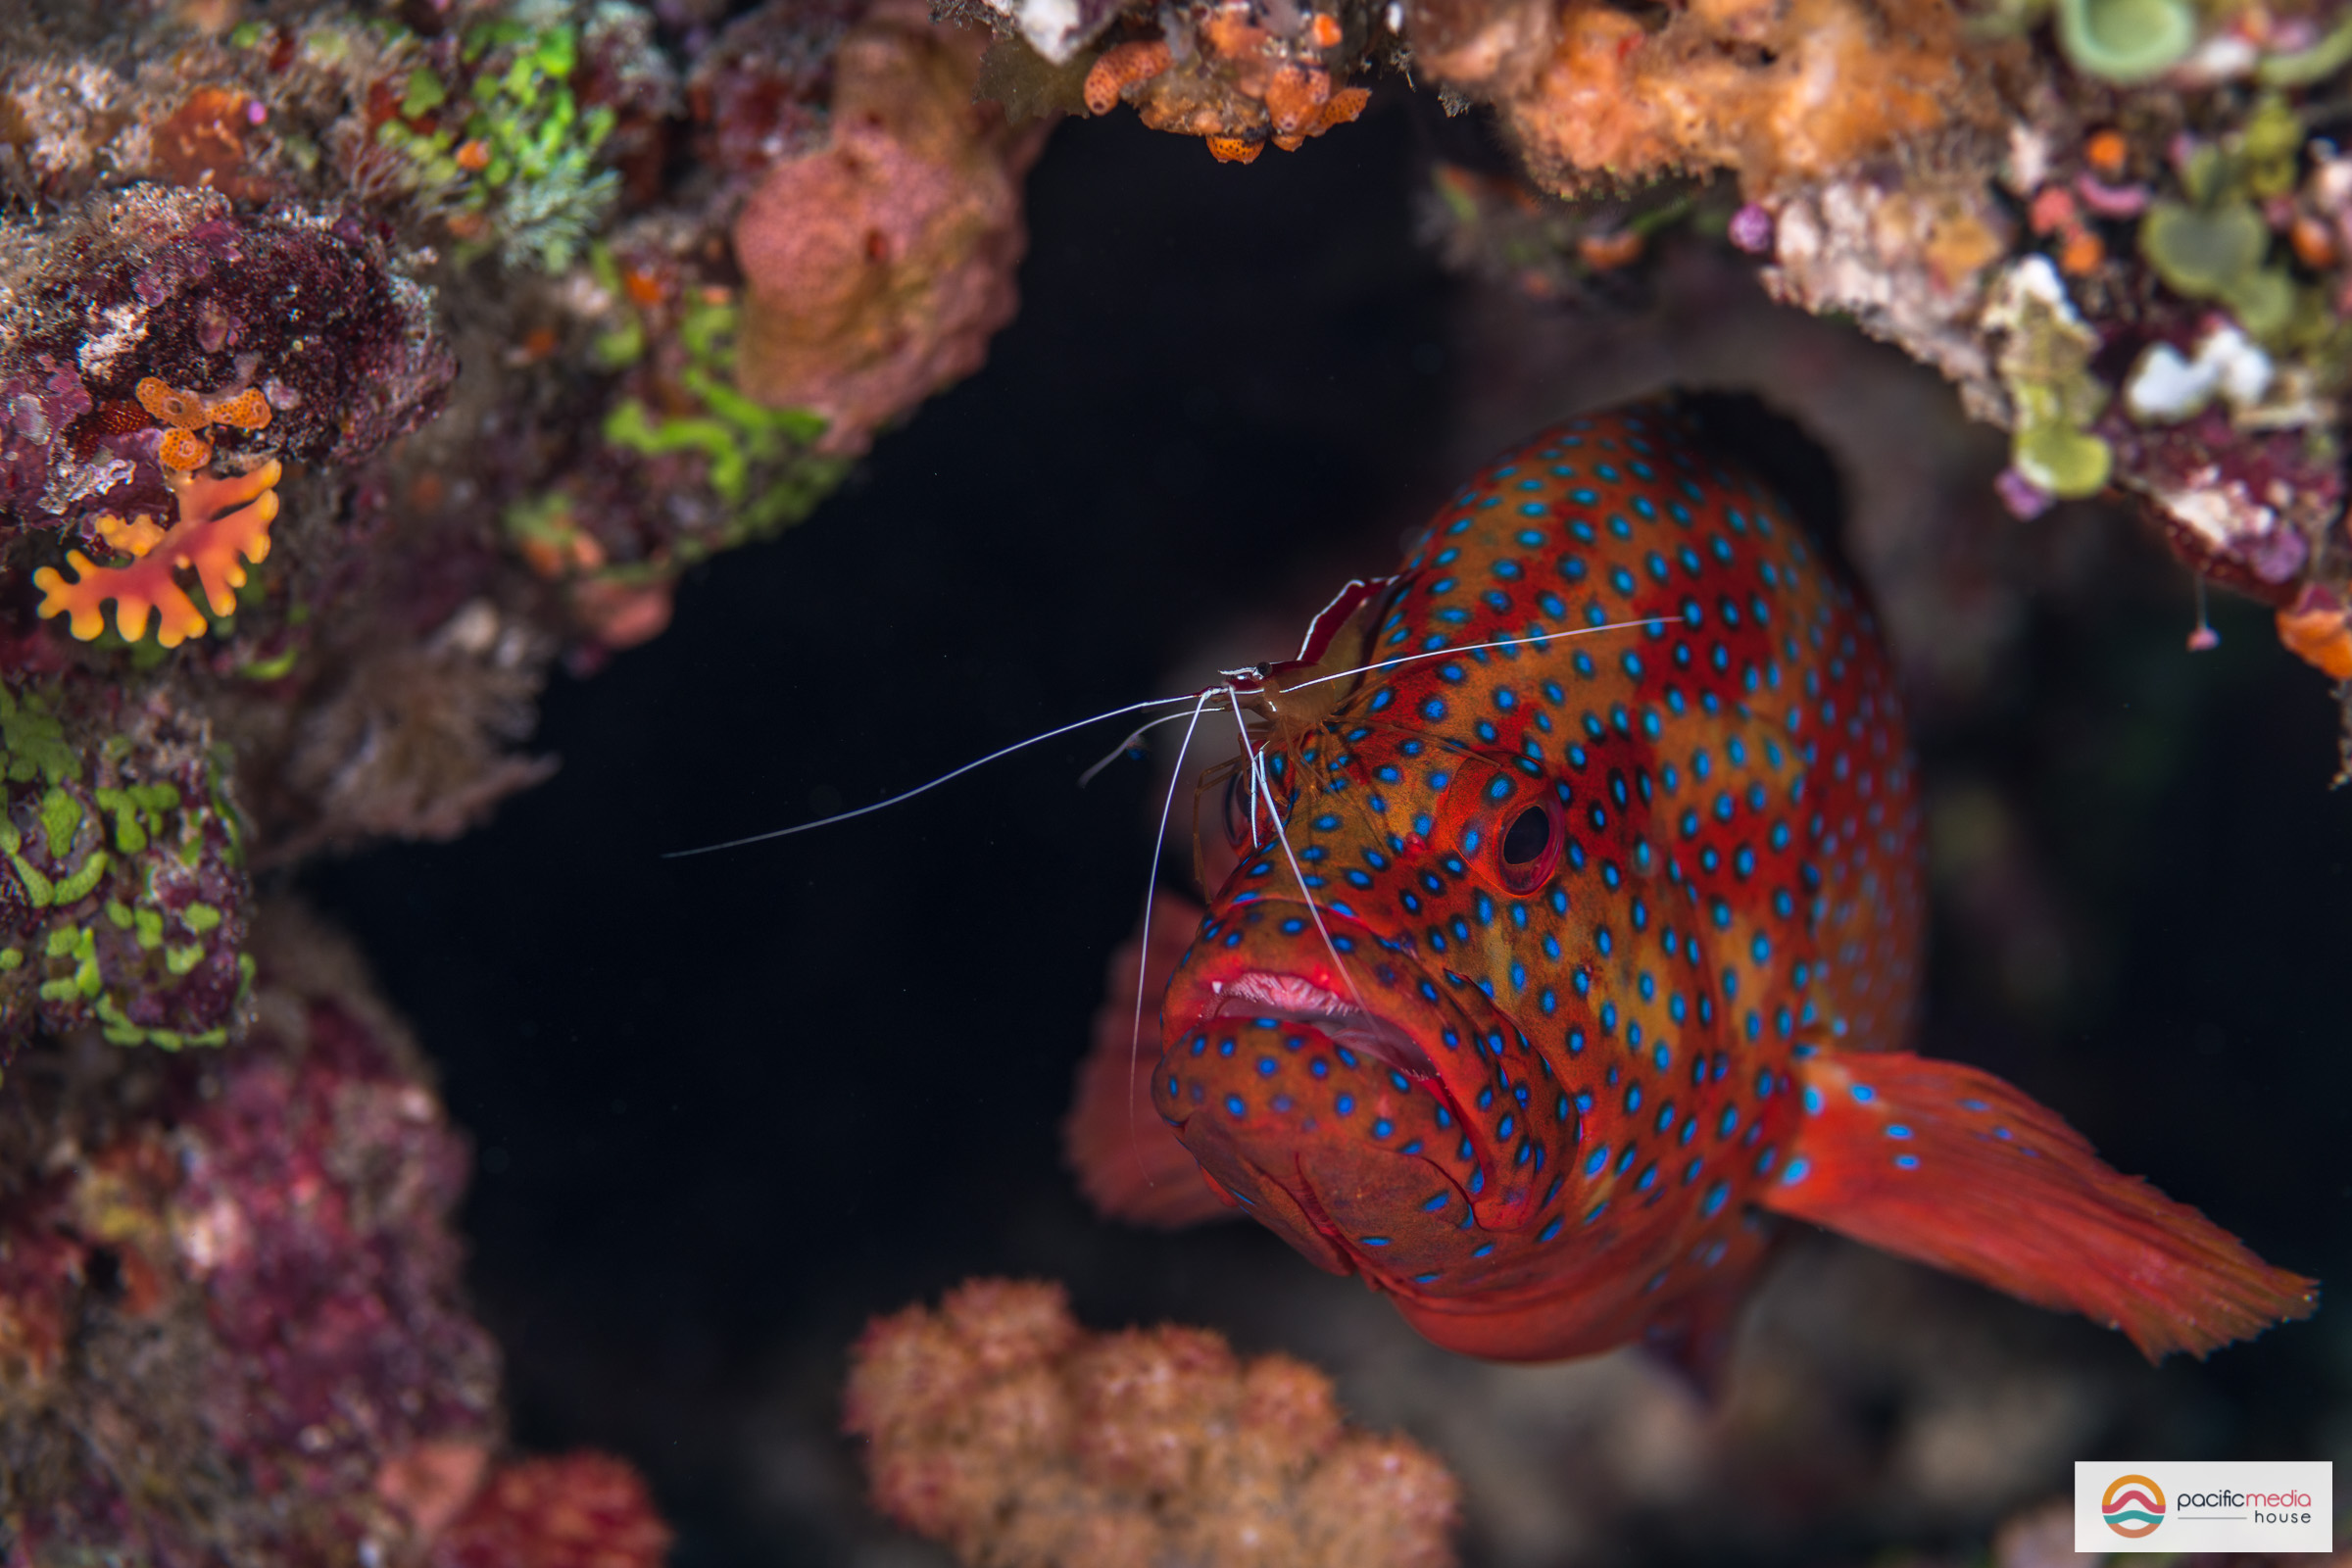 A cleaner shrimp cleans a grouper